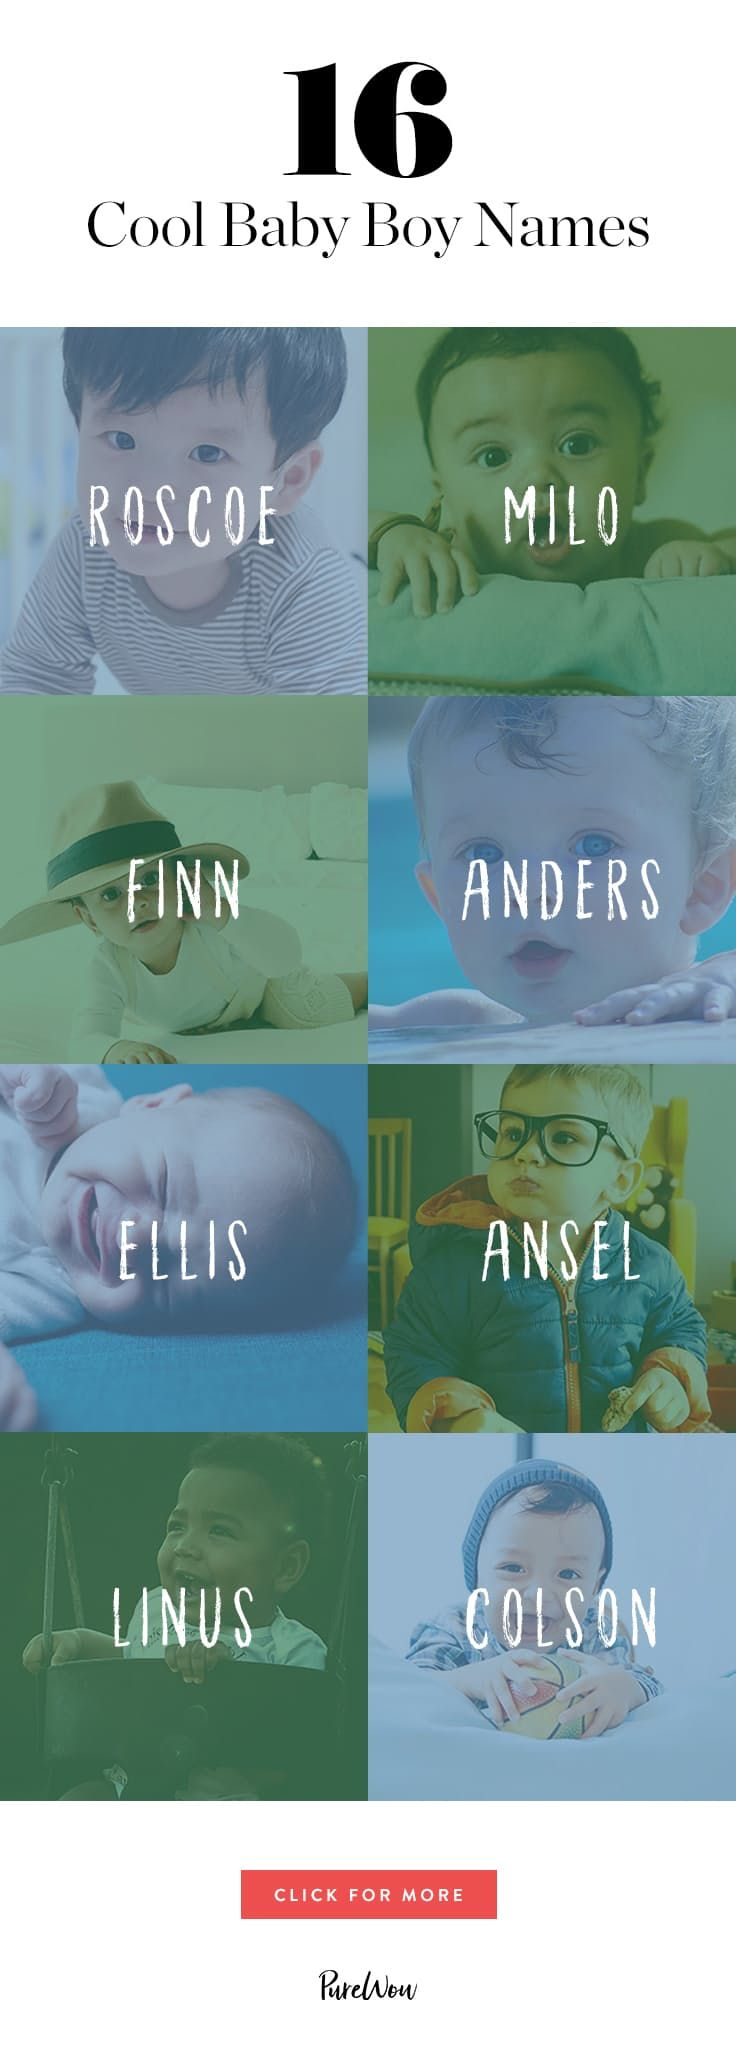 16 Cool Baby Boy Names You Havent Thought Of